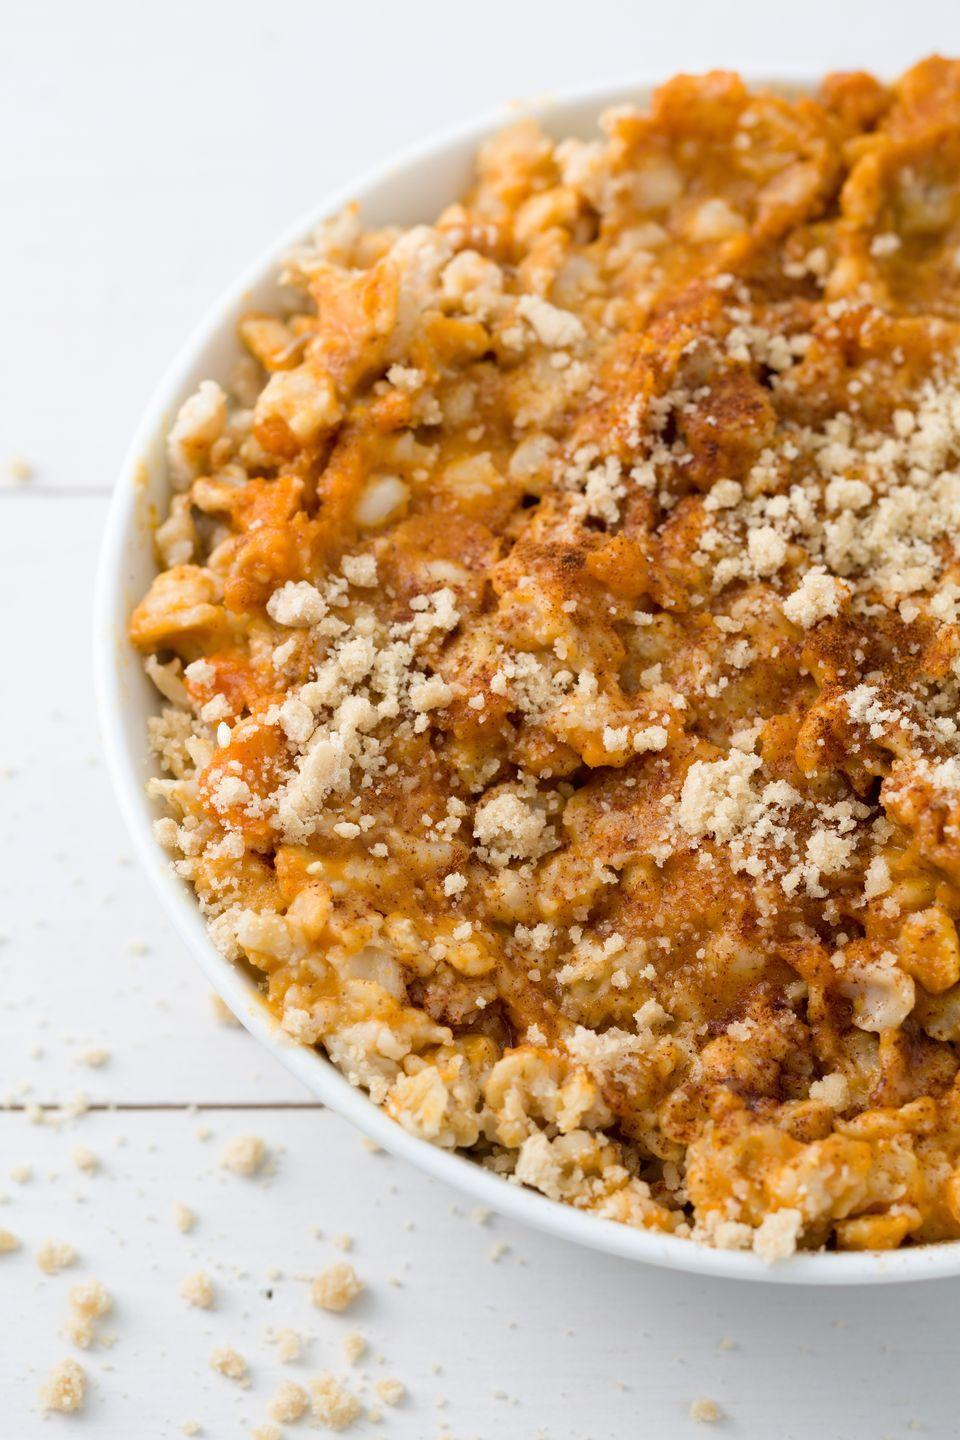 "<p>Get a taste of fall all year with these simple stir-ins: canned pumpkin, pumpkin pie spice, and cinnamon, plus a graham cracker crumble topping.</p><p>Get the recipe from <a href=""/cooking/recipe-ideas/recipes/a44502/pumpkin-pie-oatmeal-recipe/"" data-ylk=""slk:Delish"" class=""link rapid-noclick-resp"">Delish</a>.<br></p>"